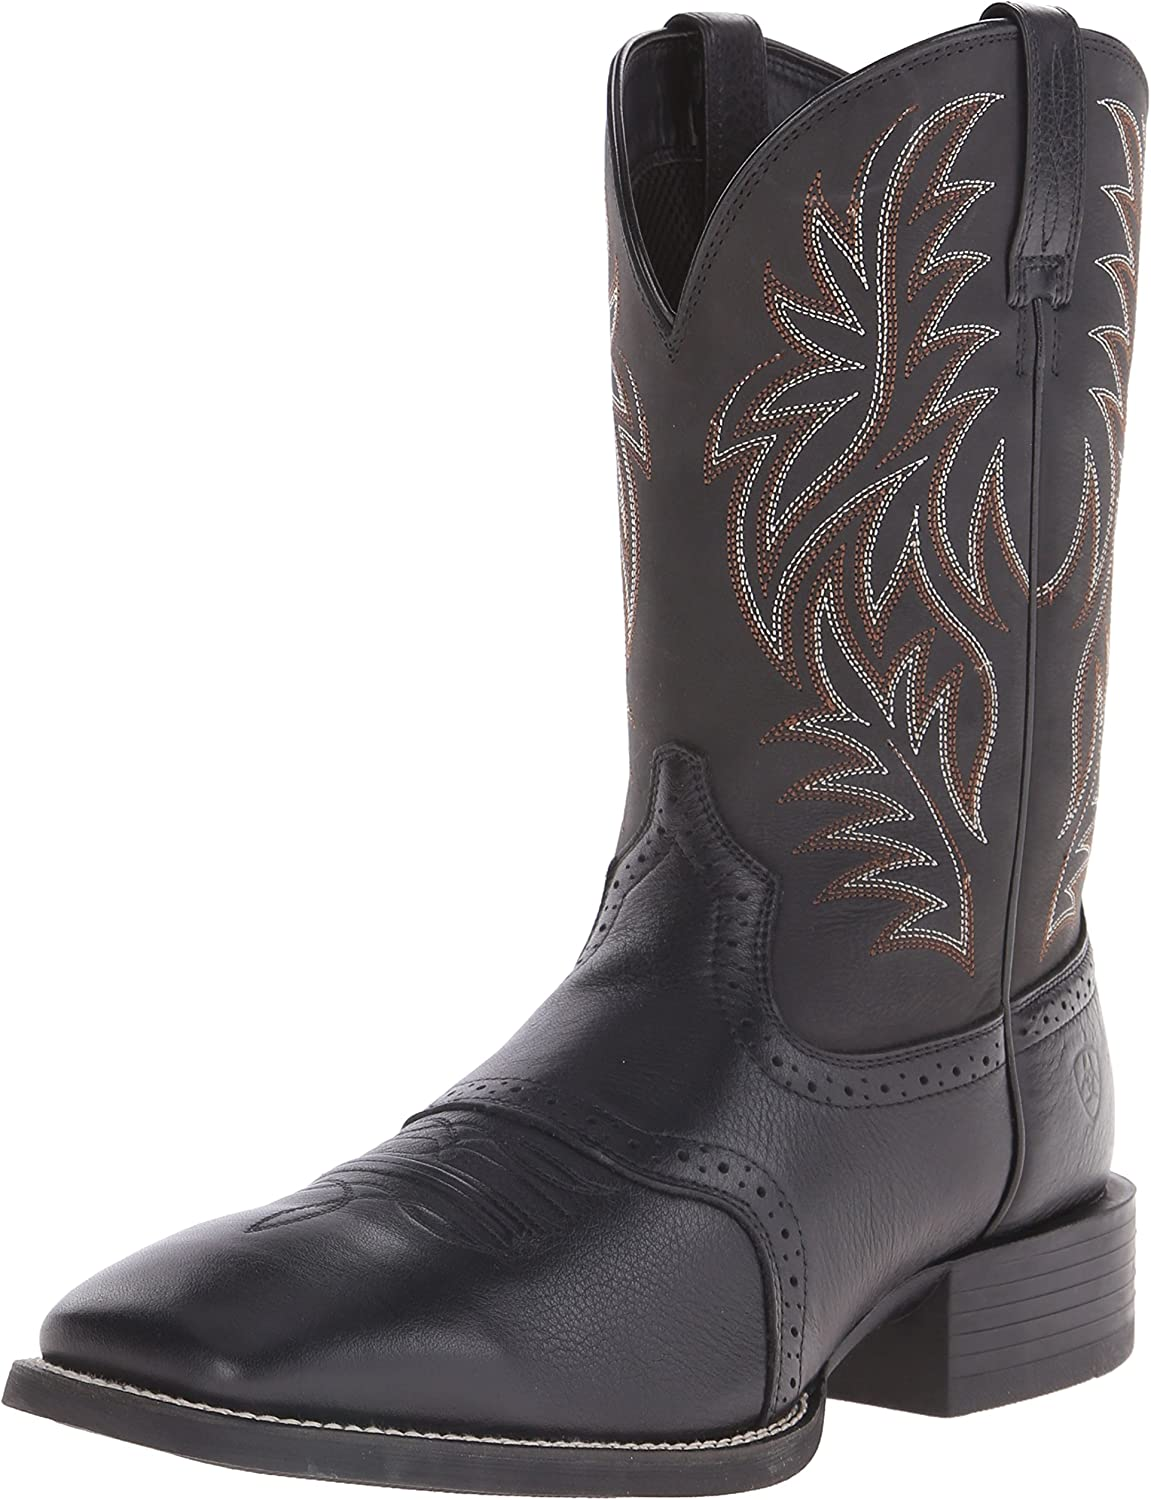 Ariat free shipping Sport Wide Square Toe Men's Ranking TOP16 Coun Boots Western –